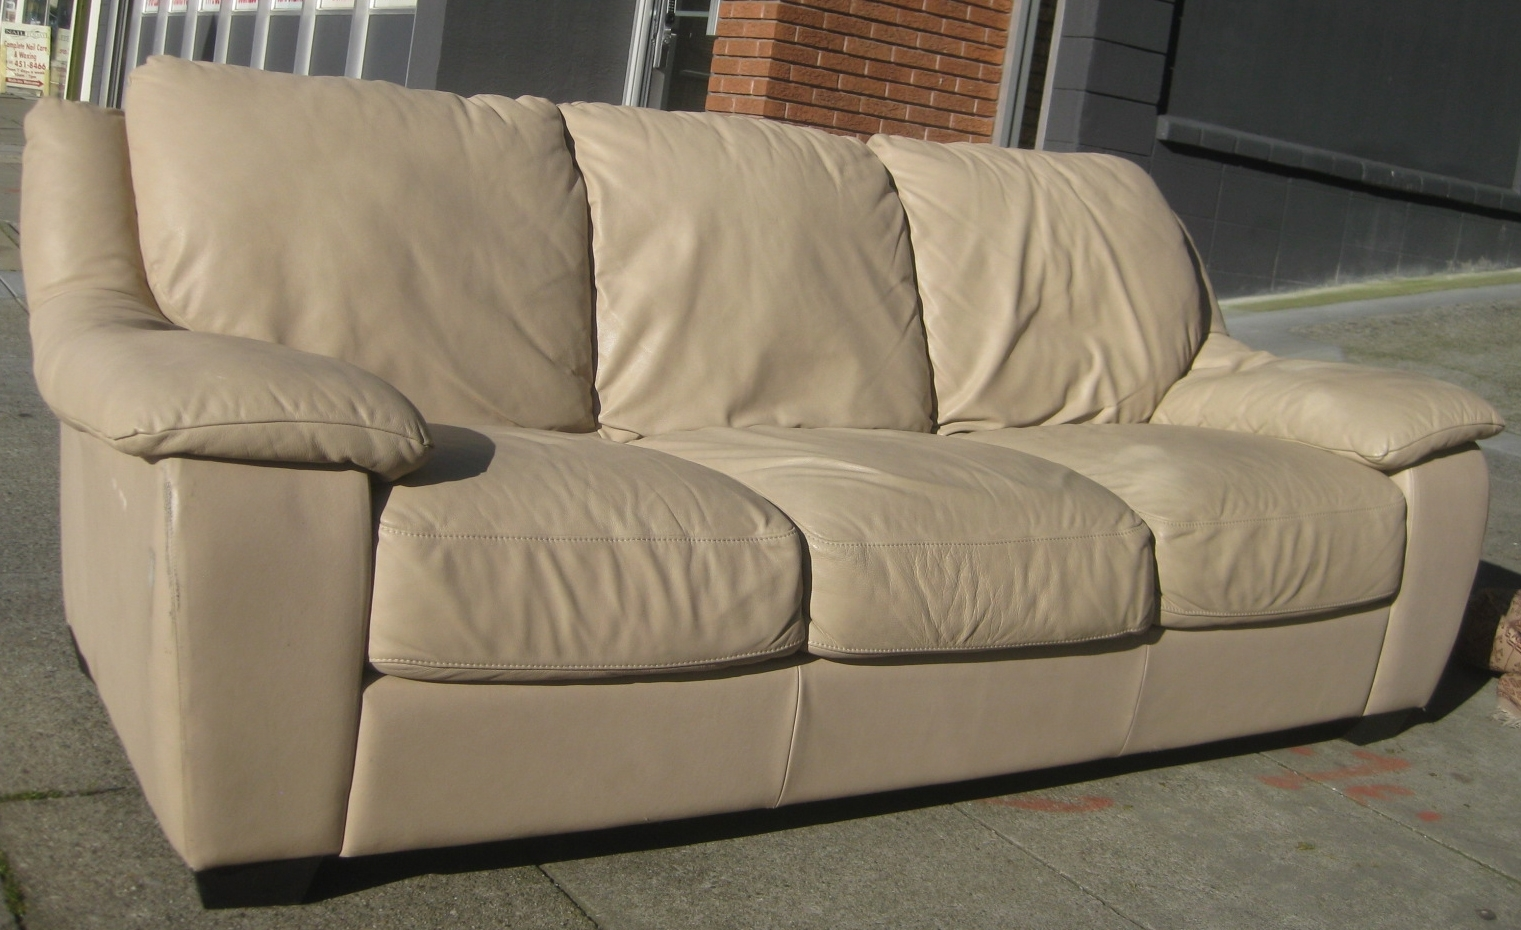 Best Off White Leather Couch Pictures – Liltigertoo Intended For Off White Leather Sofas (Image 1 of 10)